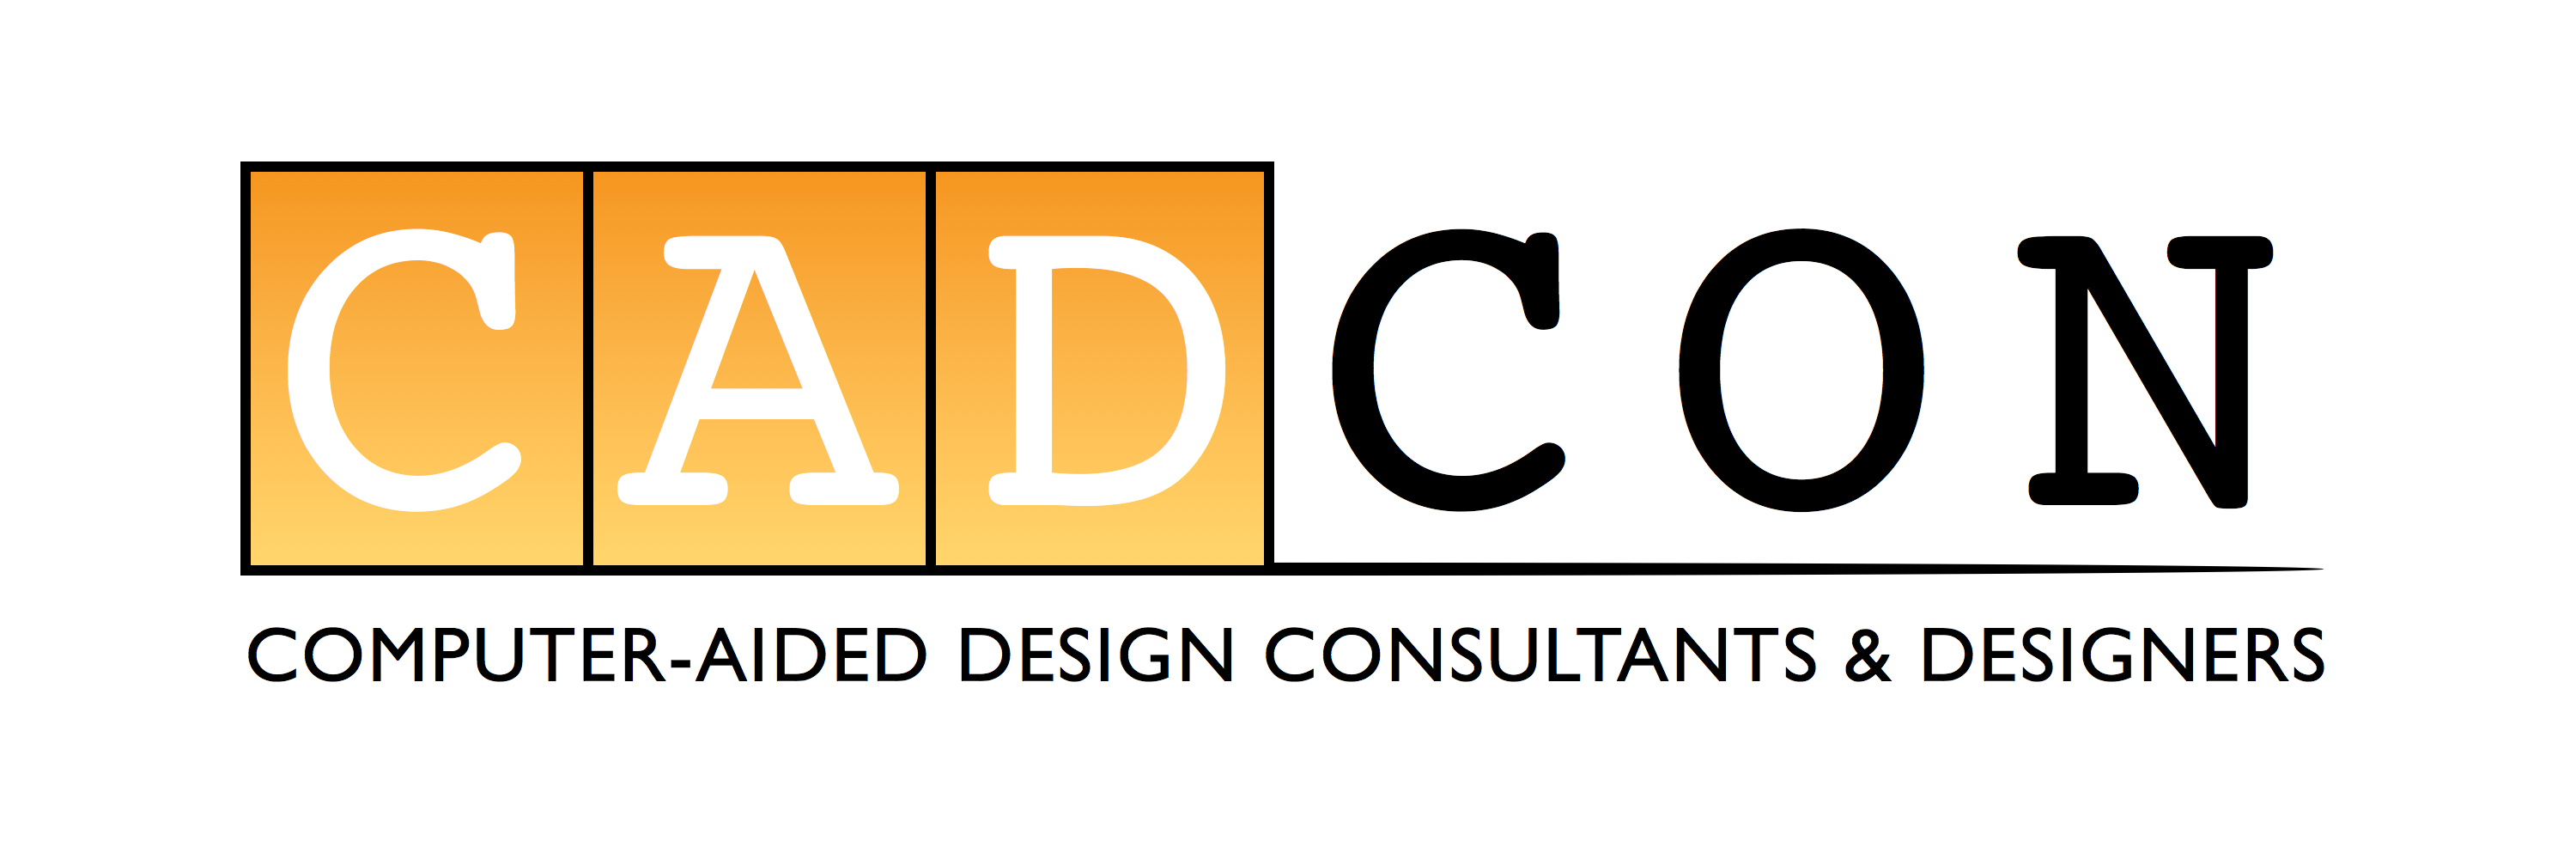 CADCON Computer-Aided Design Consultants & Designers